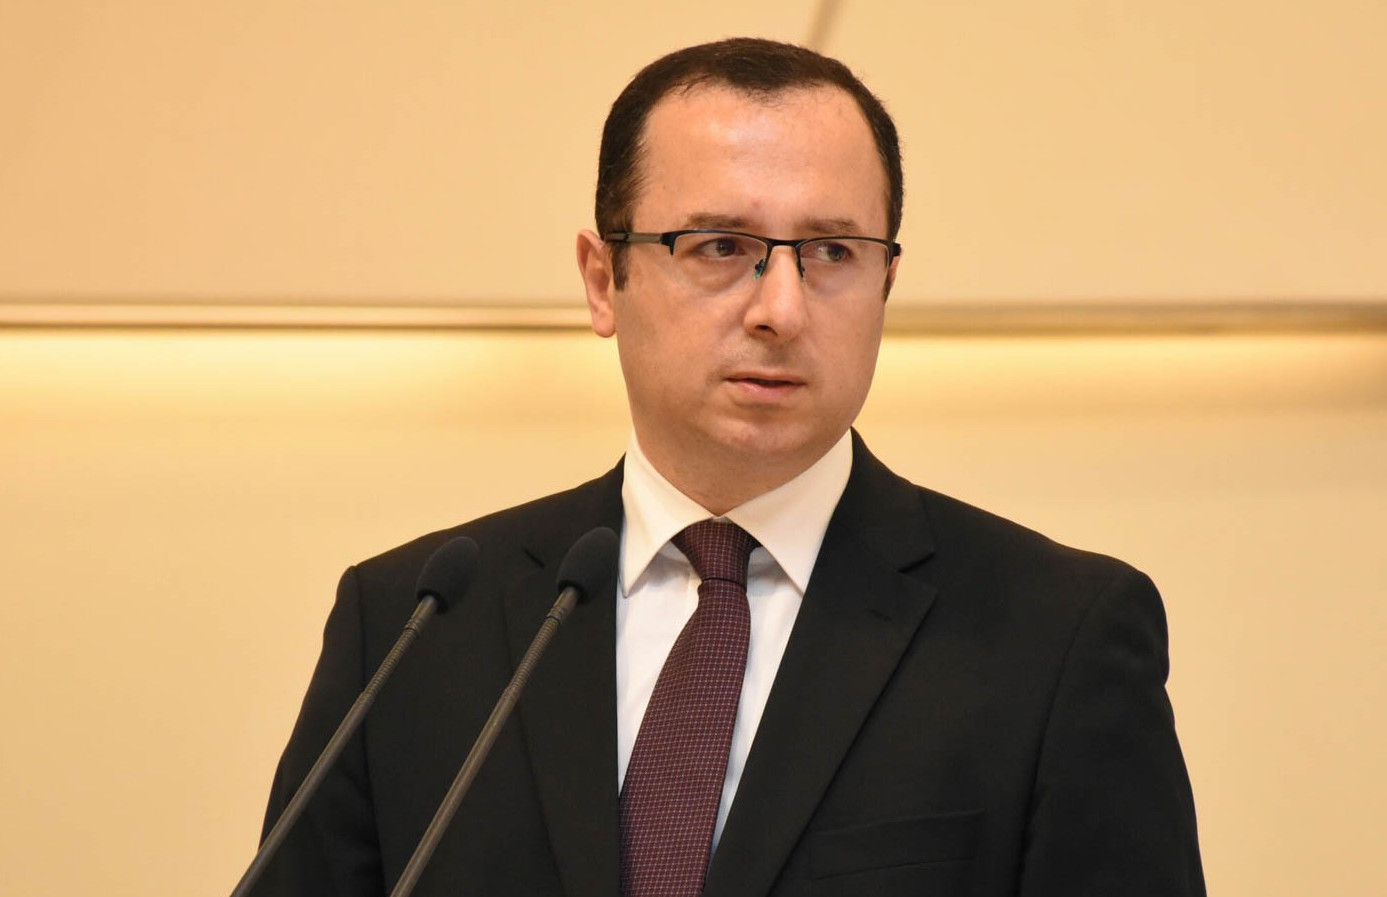 Council of Europe Committee of Ministers to discuss Chiragov and Co vs. Armenia in December